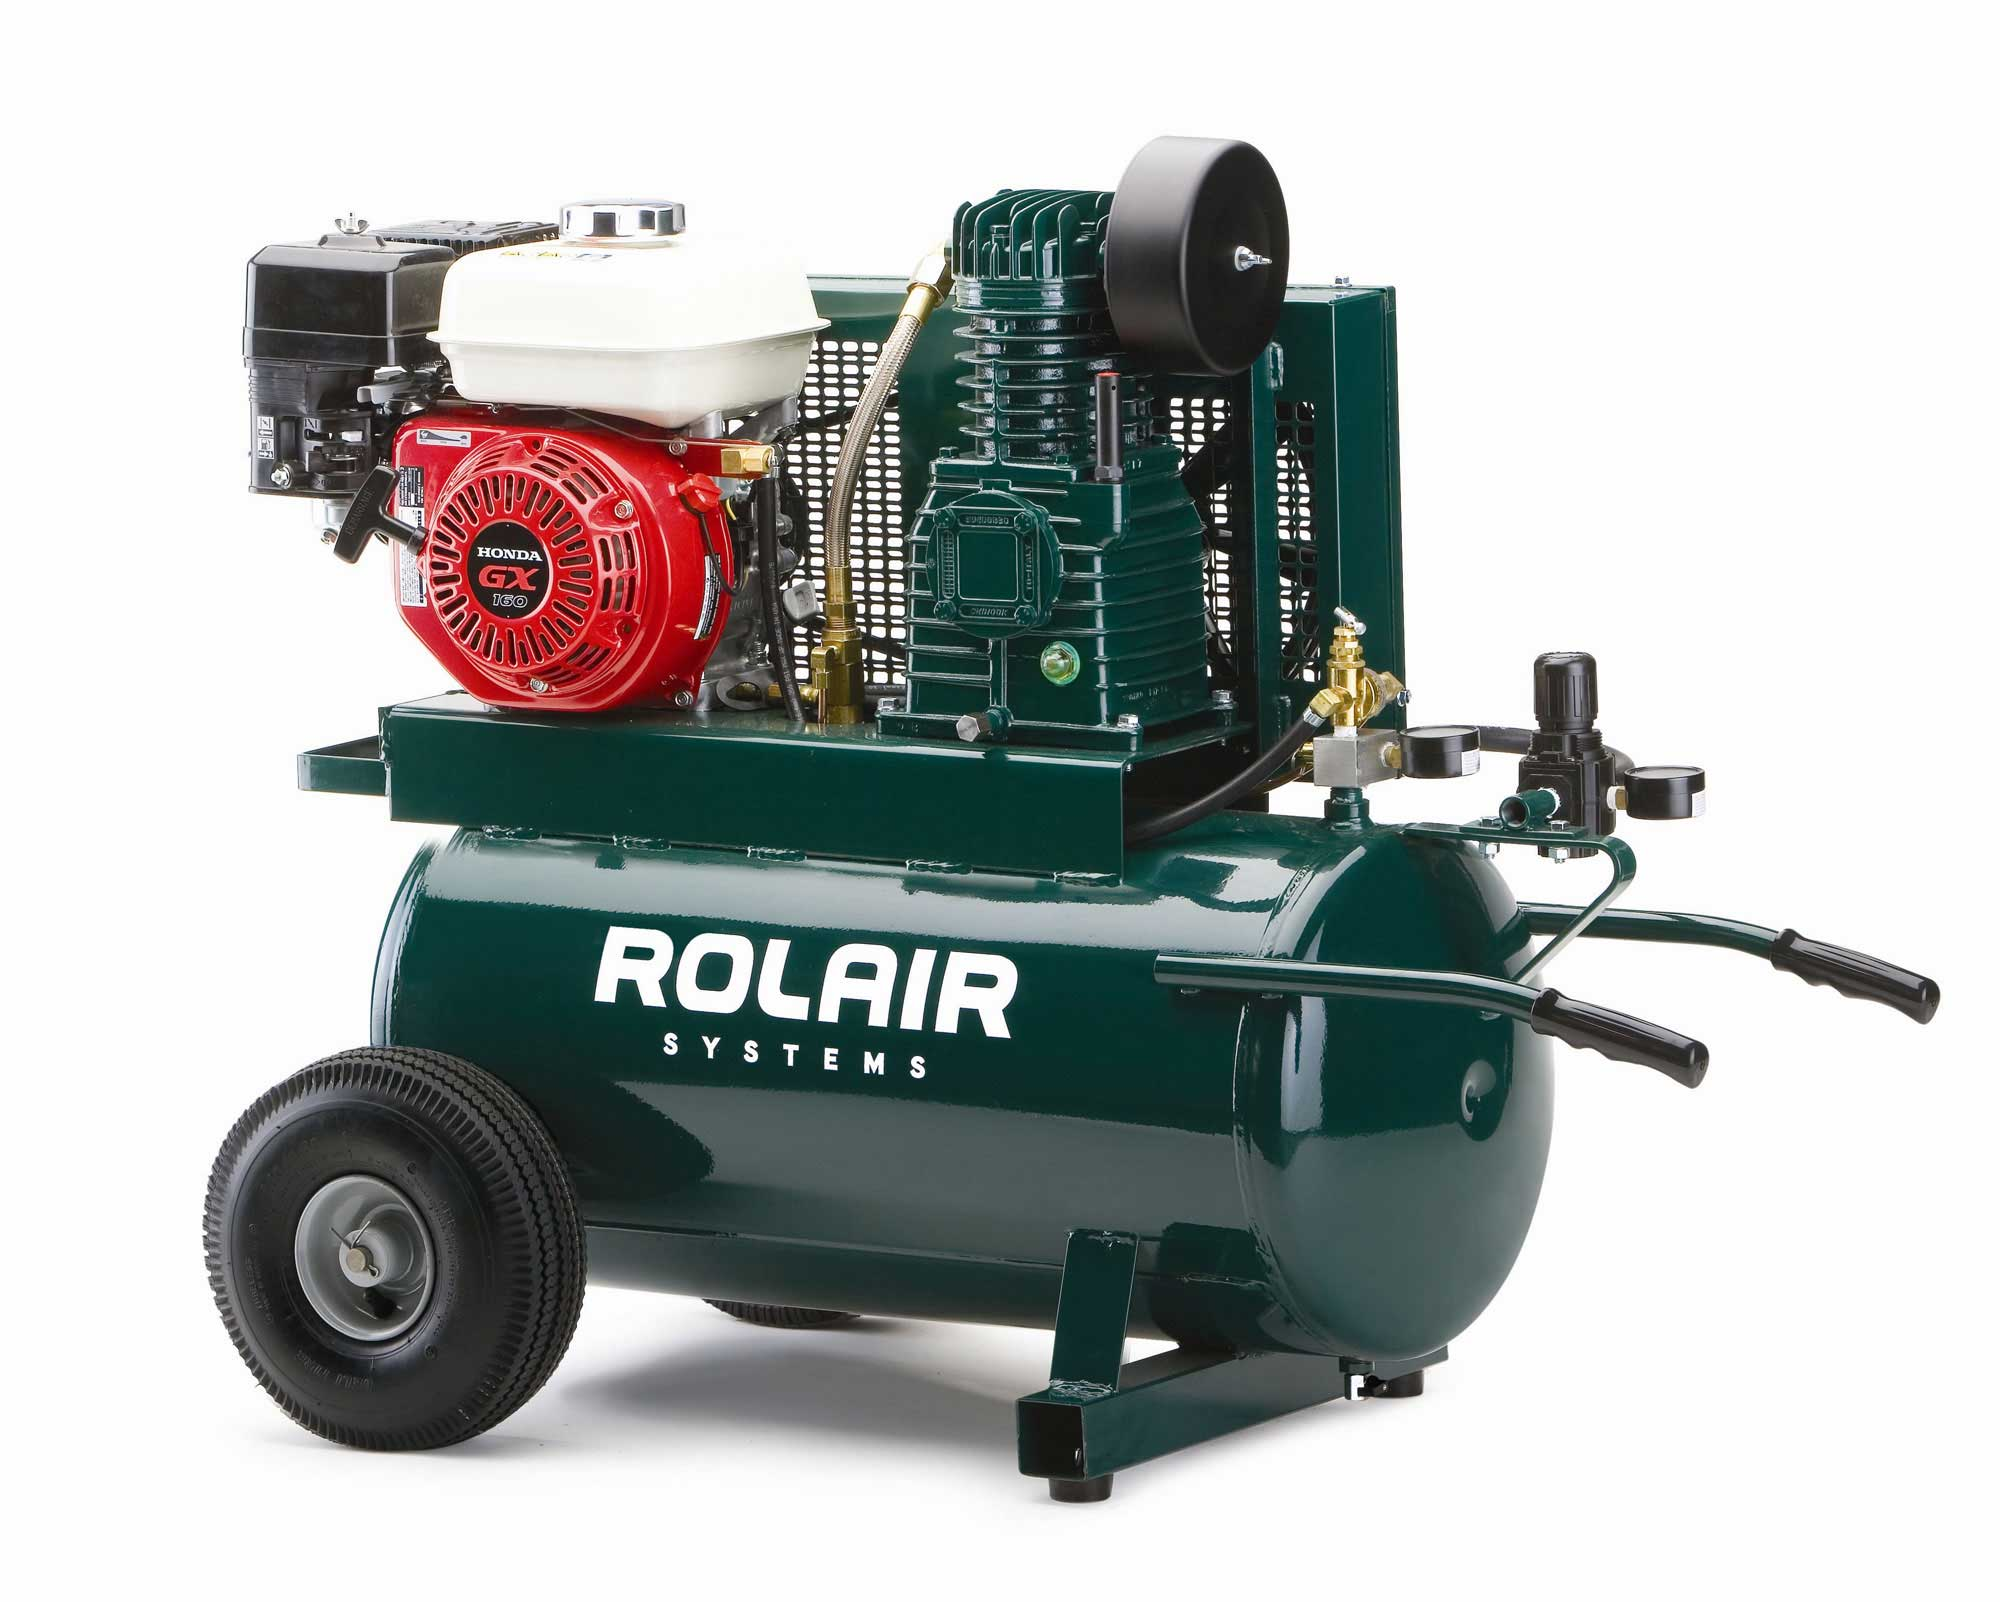 Rolair 5.5 HP 20 Gallon Gas Portable Air Compressor w/Honda Engine 4090HK17/20